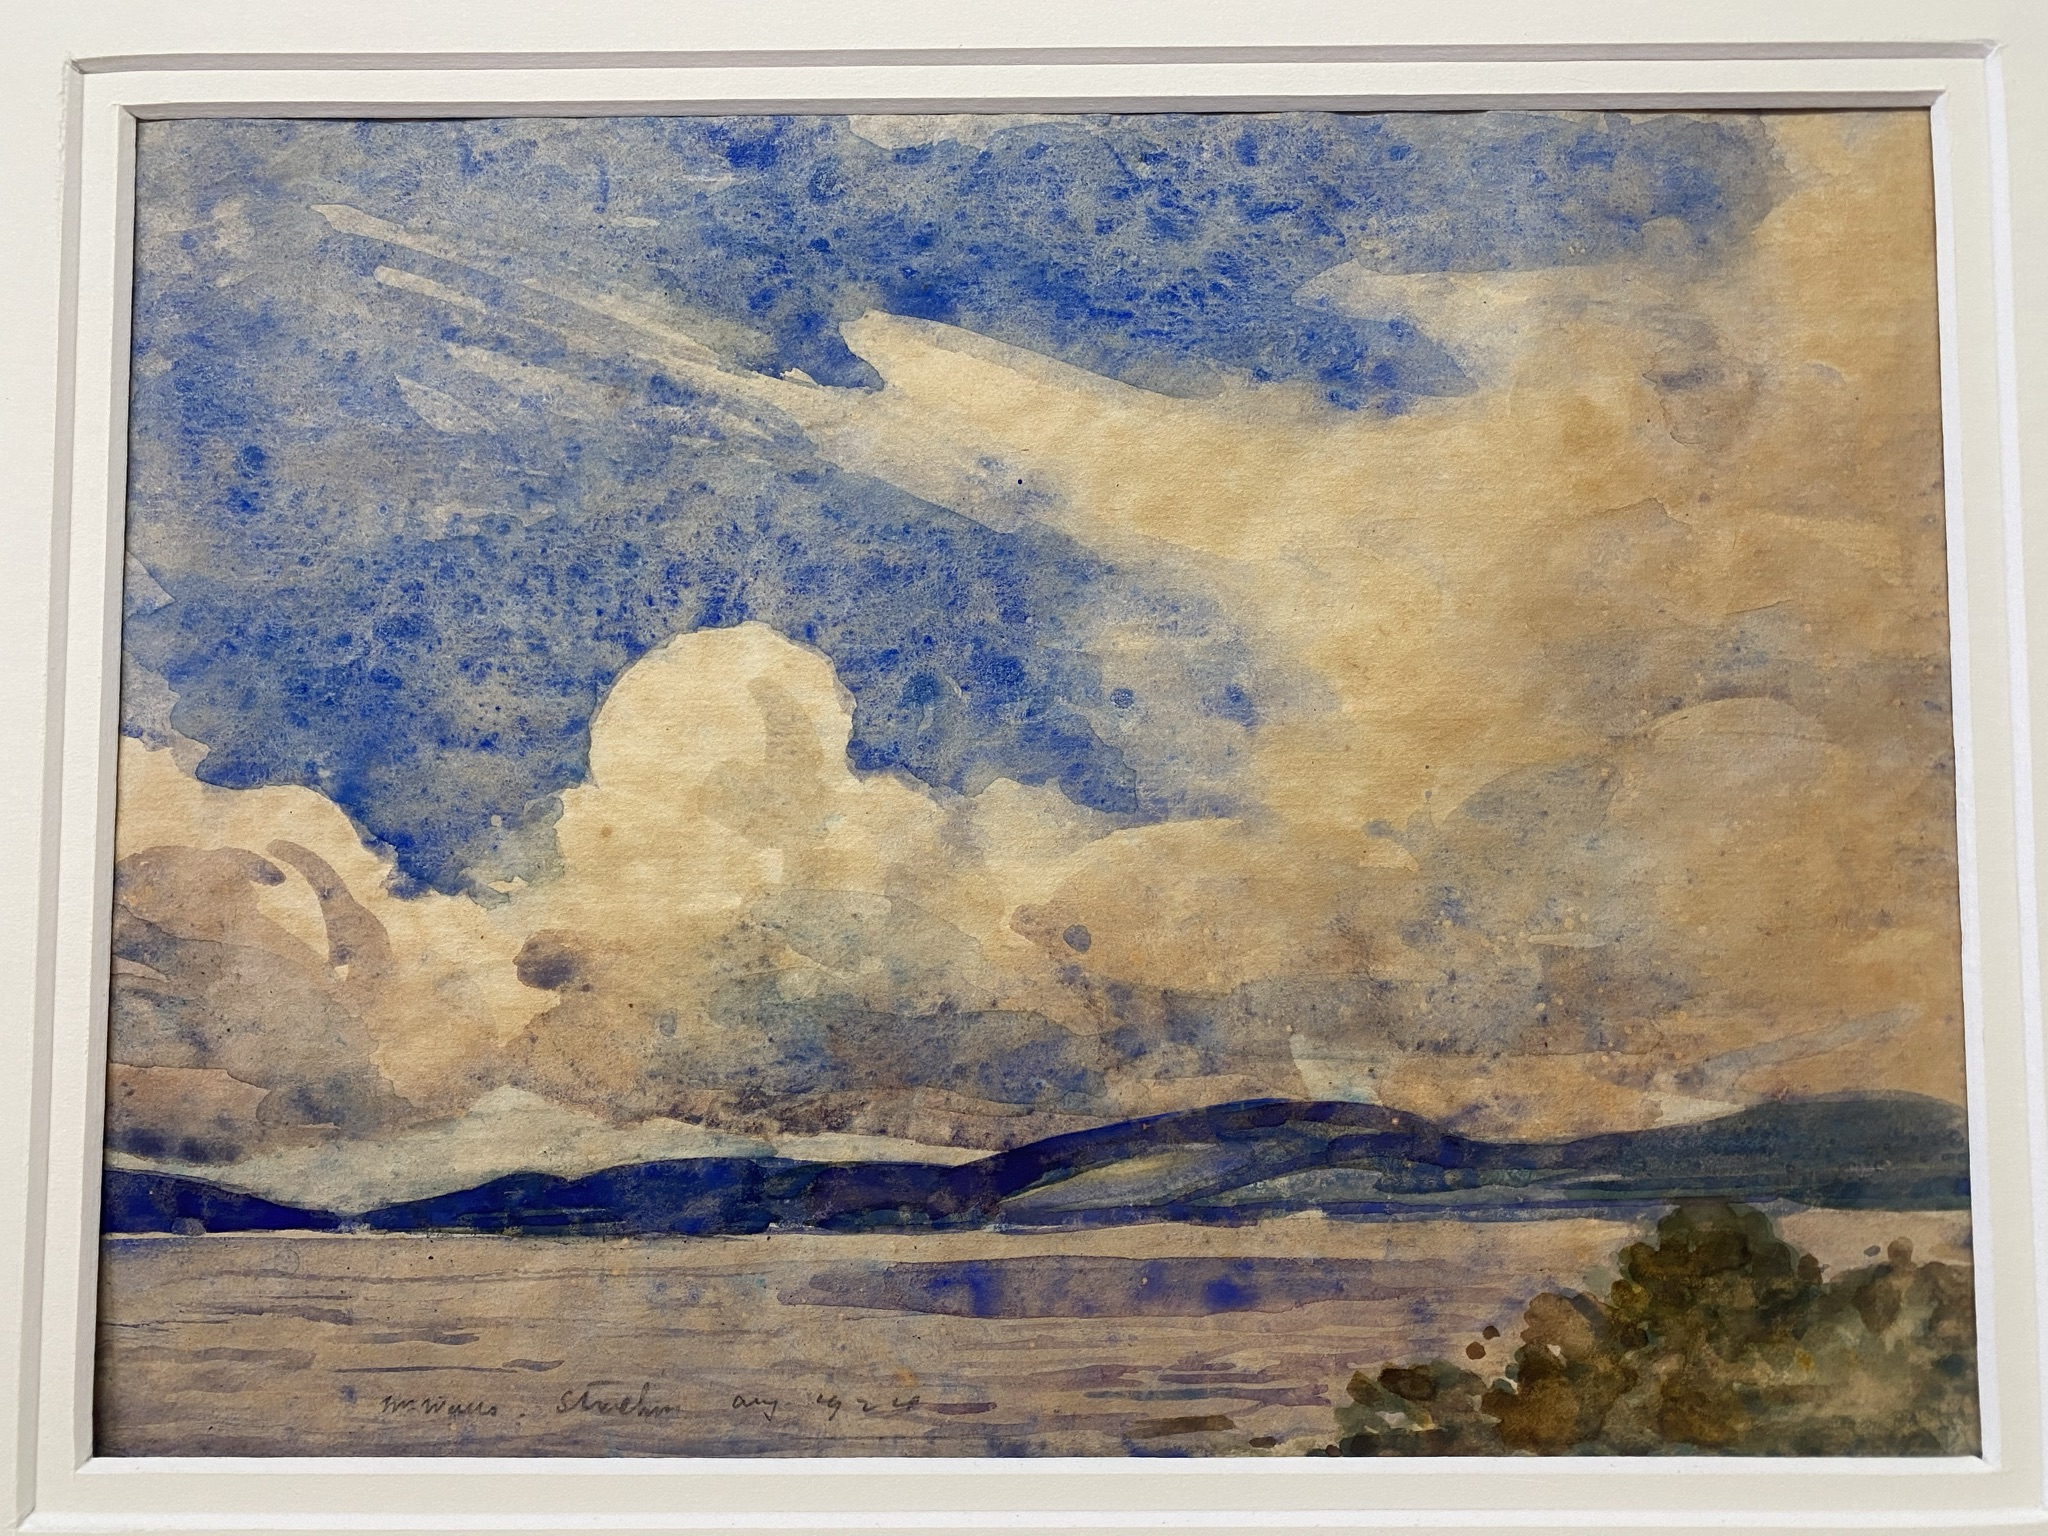 """William Walls 1860-1942 ARSA, RSW, RSA signed watercolour """"Cloudy day Strathcurr"""" - Image 3 of 4"""